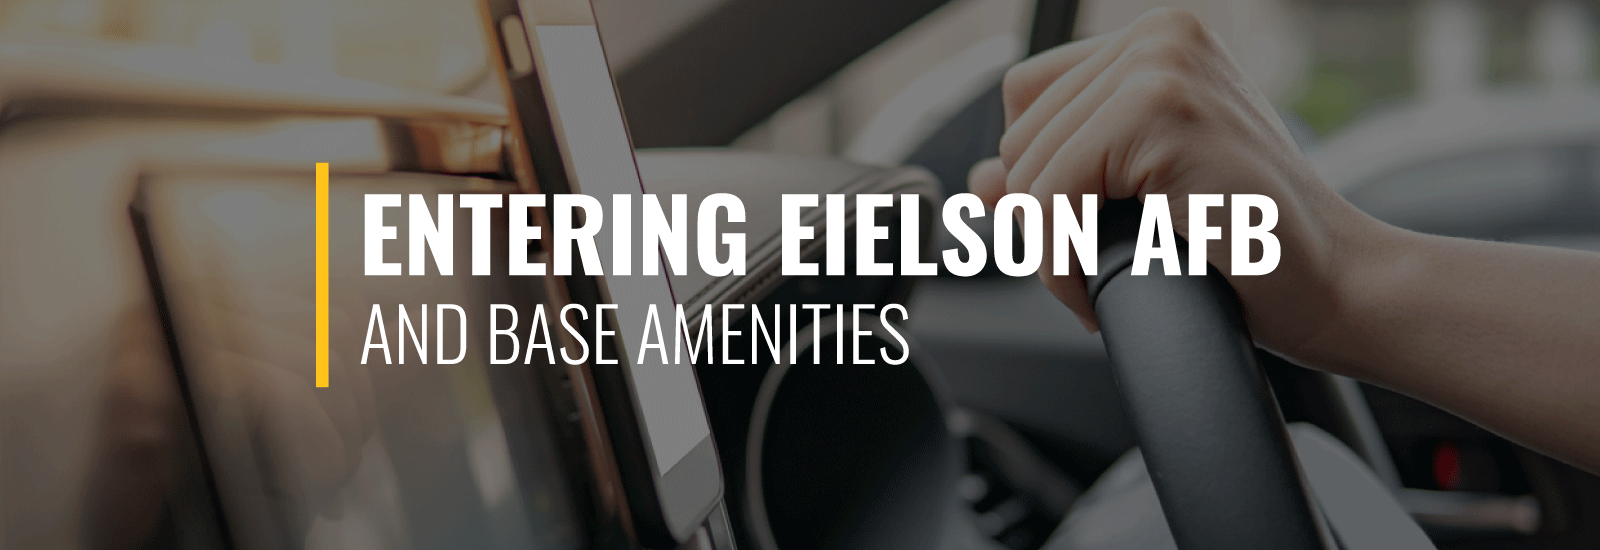 Entering Eielson Air Force Base and Amenities